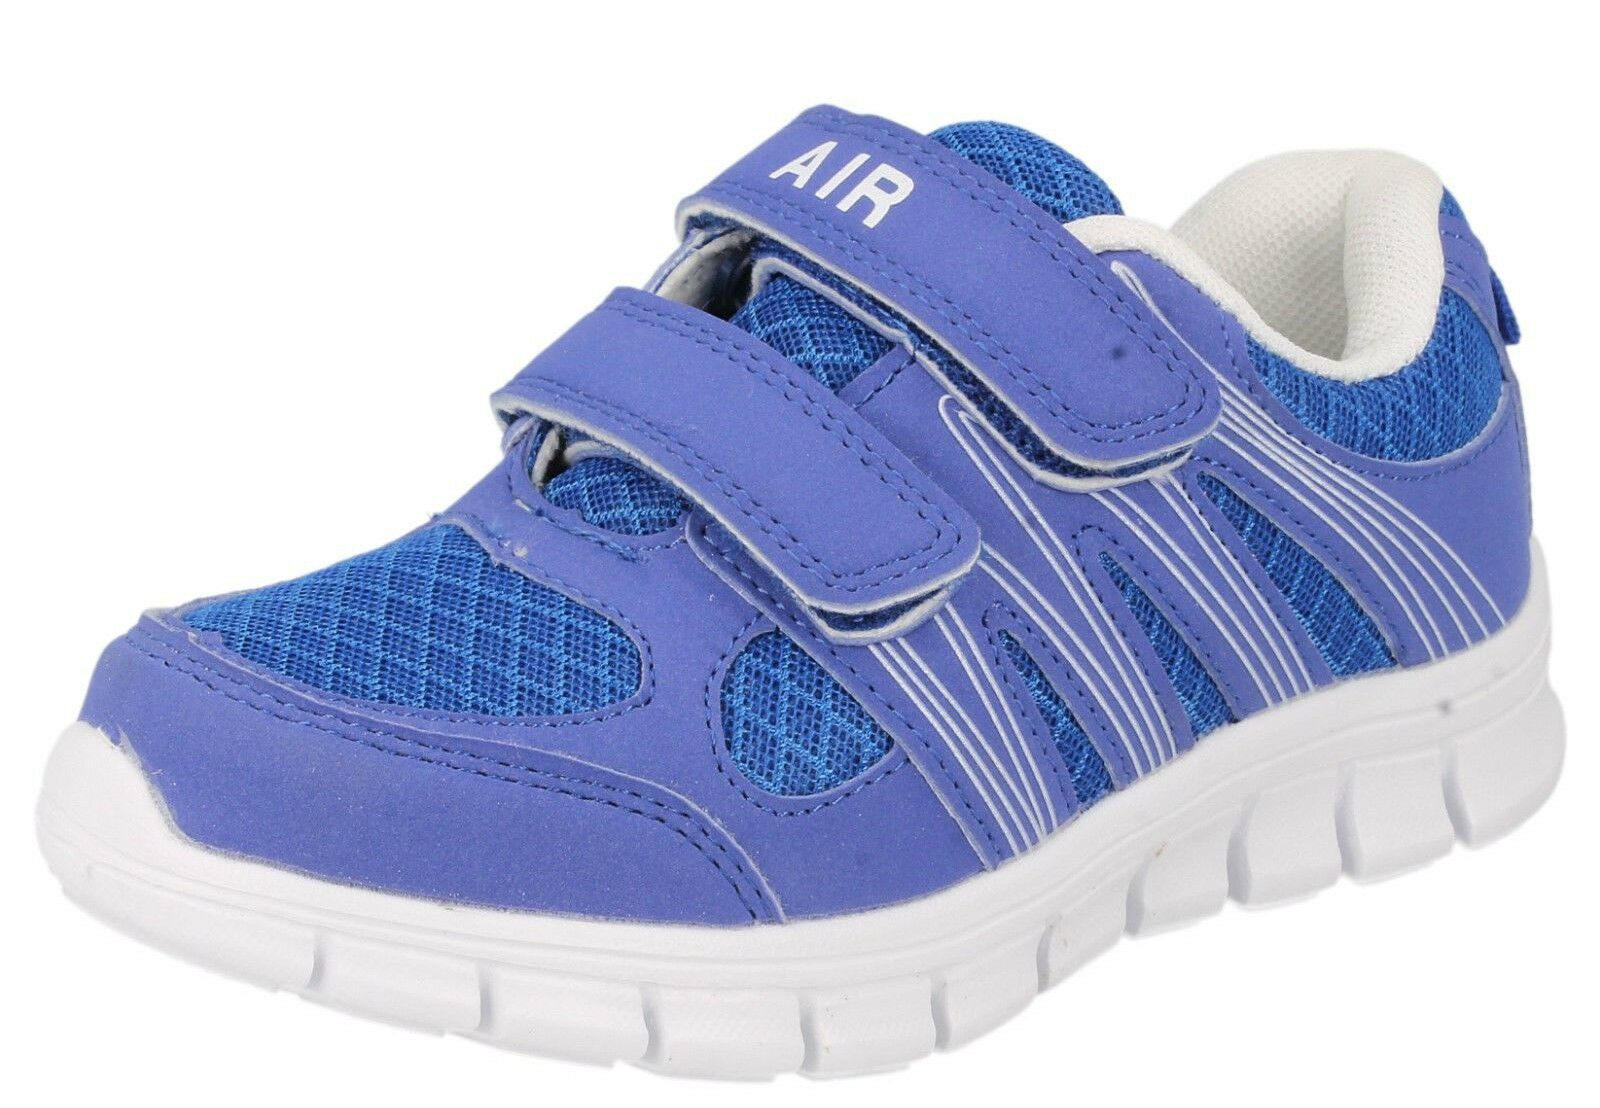 68a23fce0f3f Mens Airtech Trainers Label Sprint Royal white 13 UK Standard